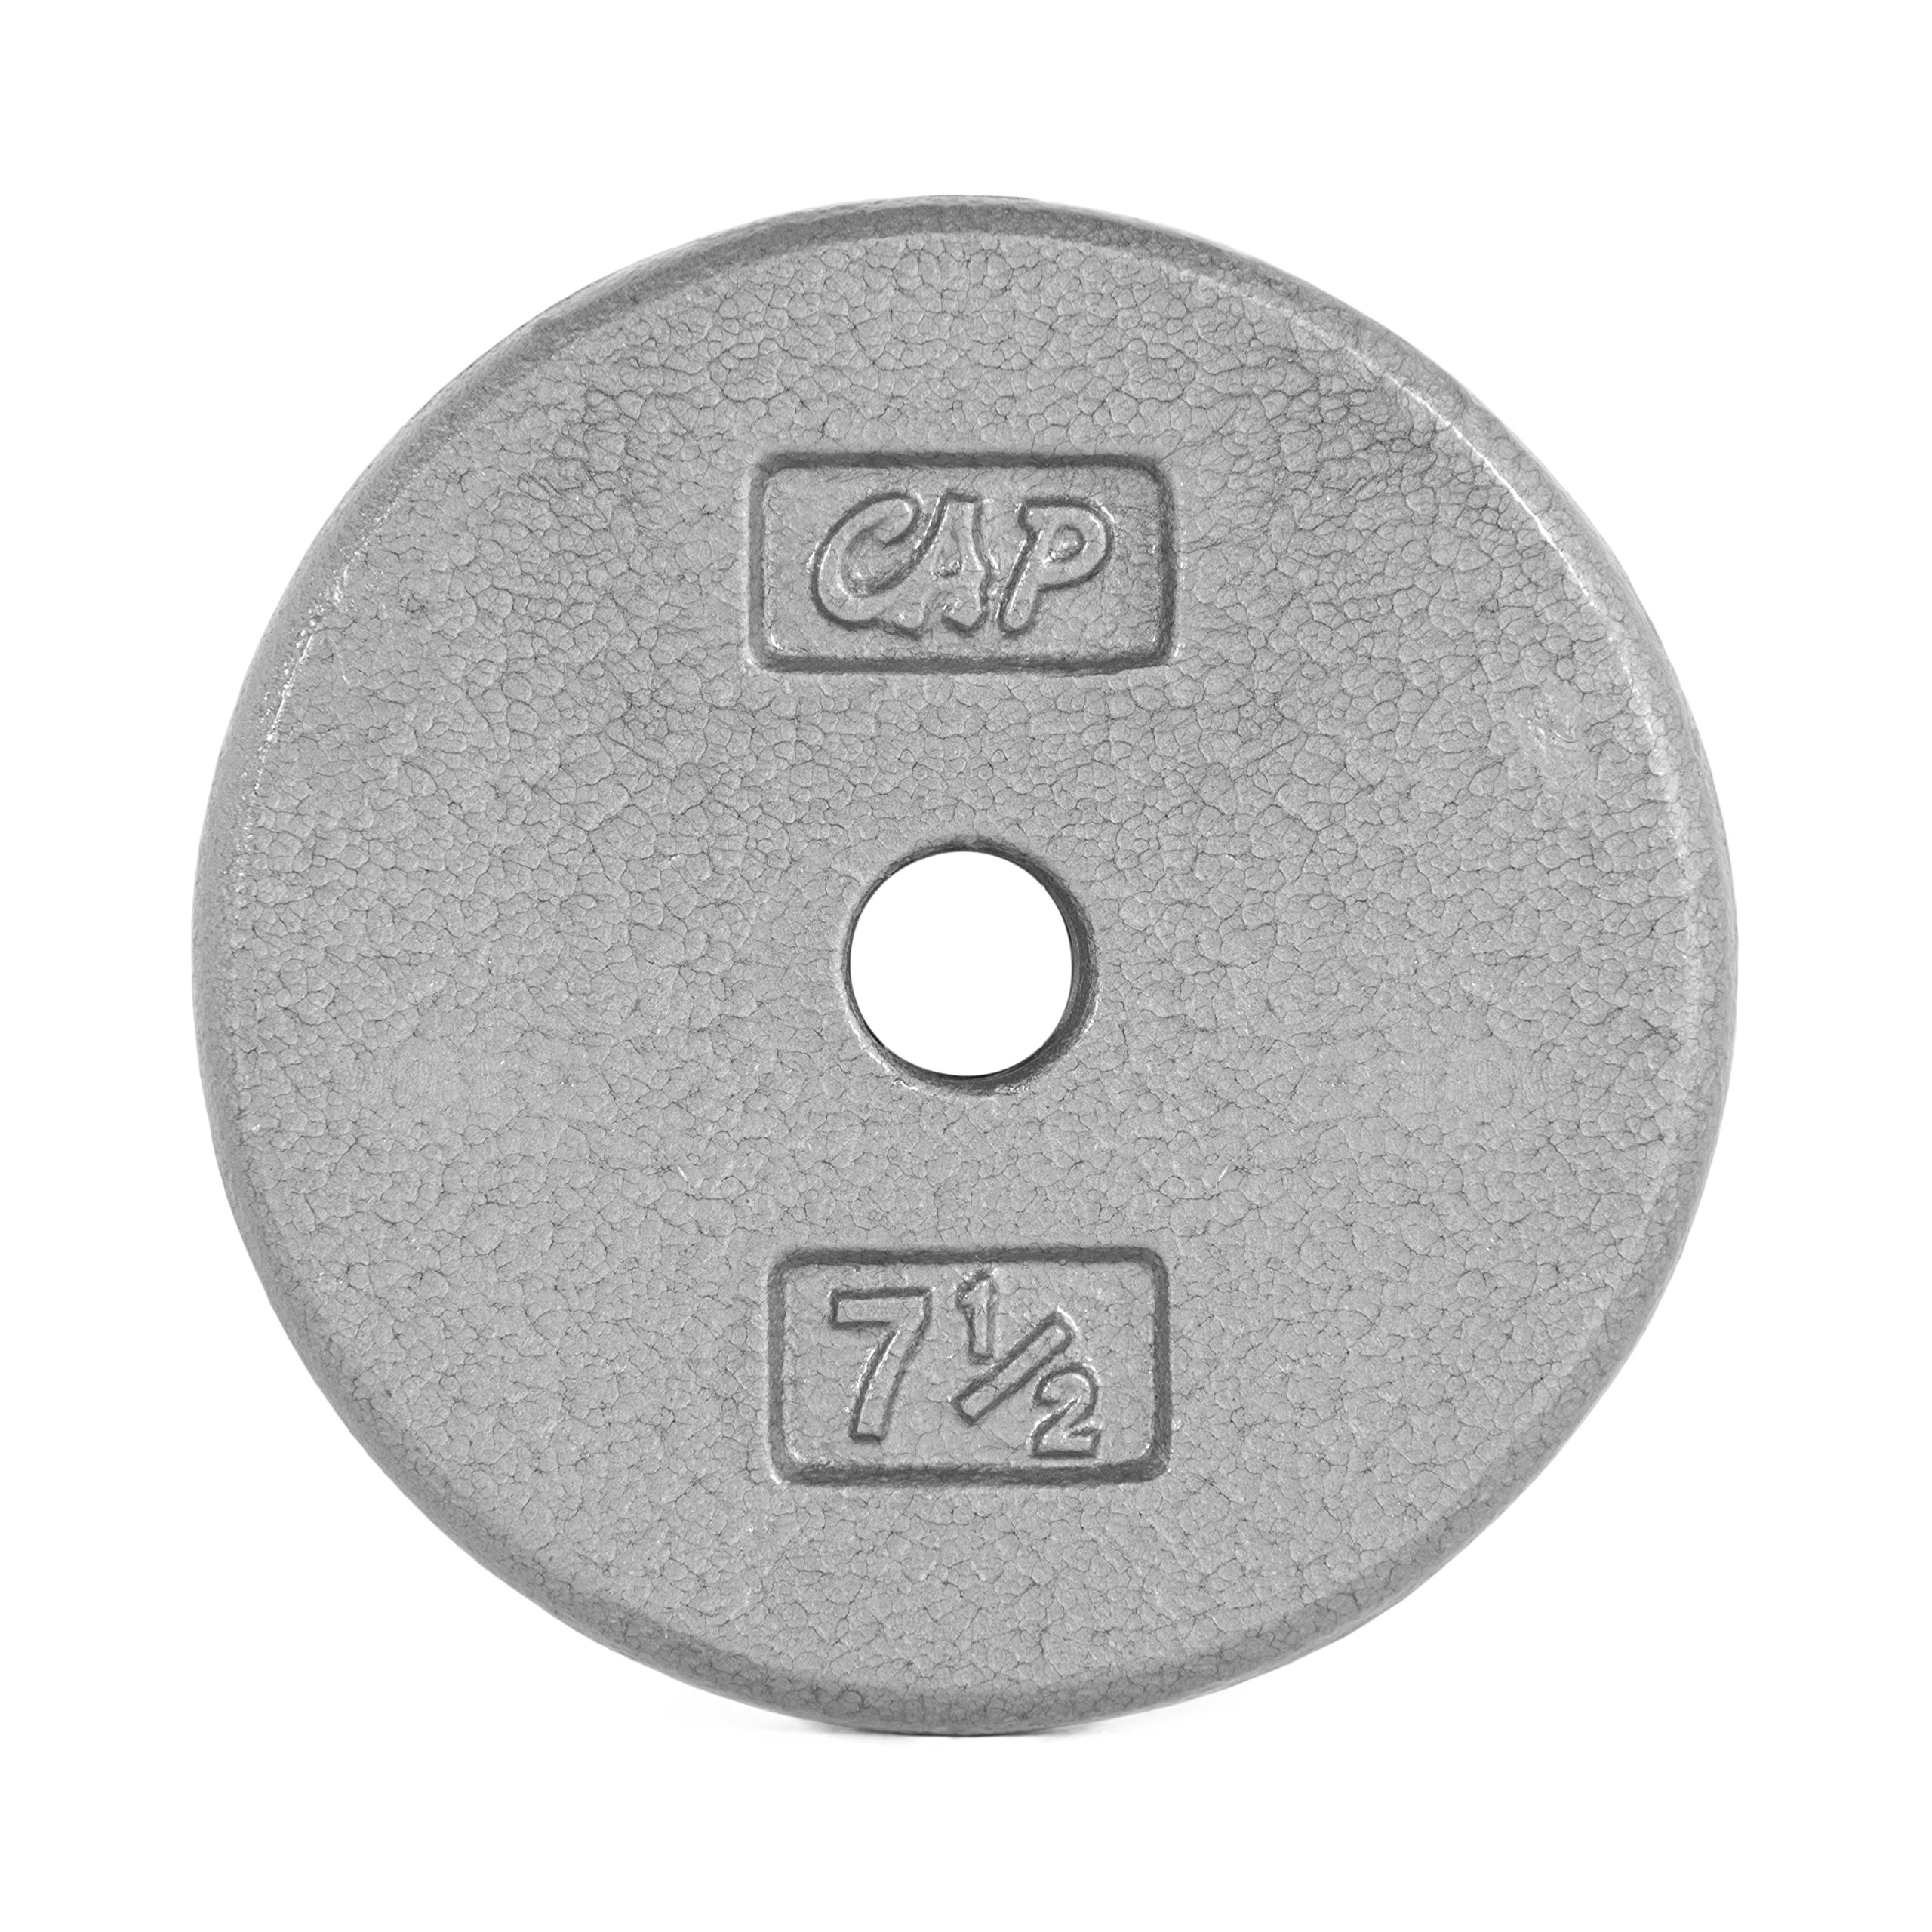 CAP Barbell Cast Iron Standard 1-Inch Weight Plates, Gray, Single, 7.5 Pound